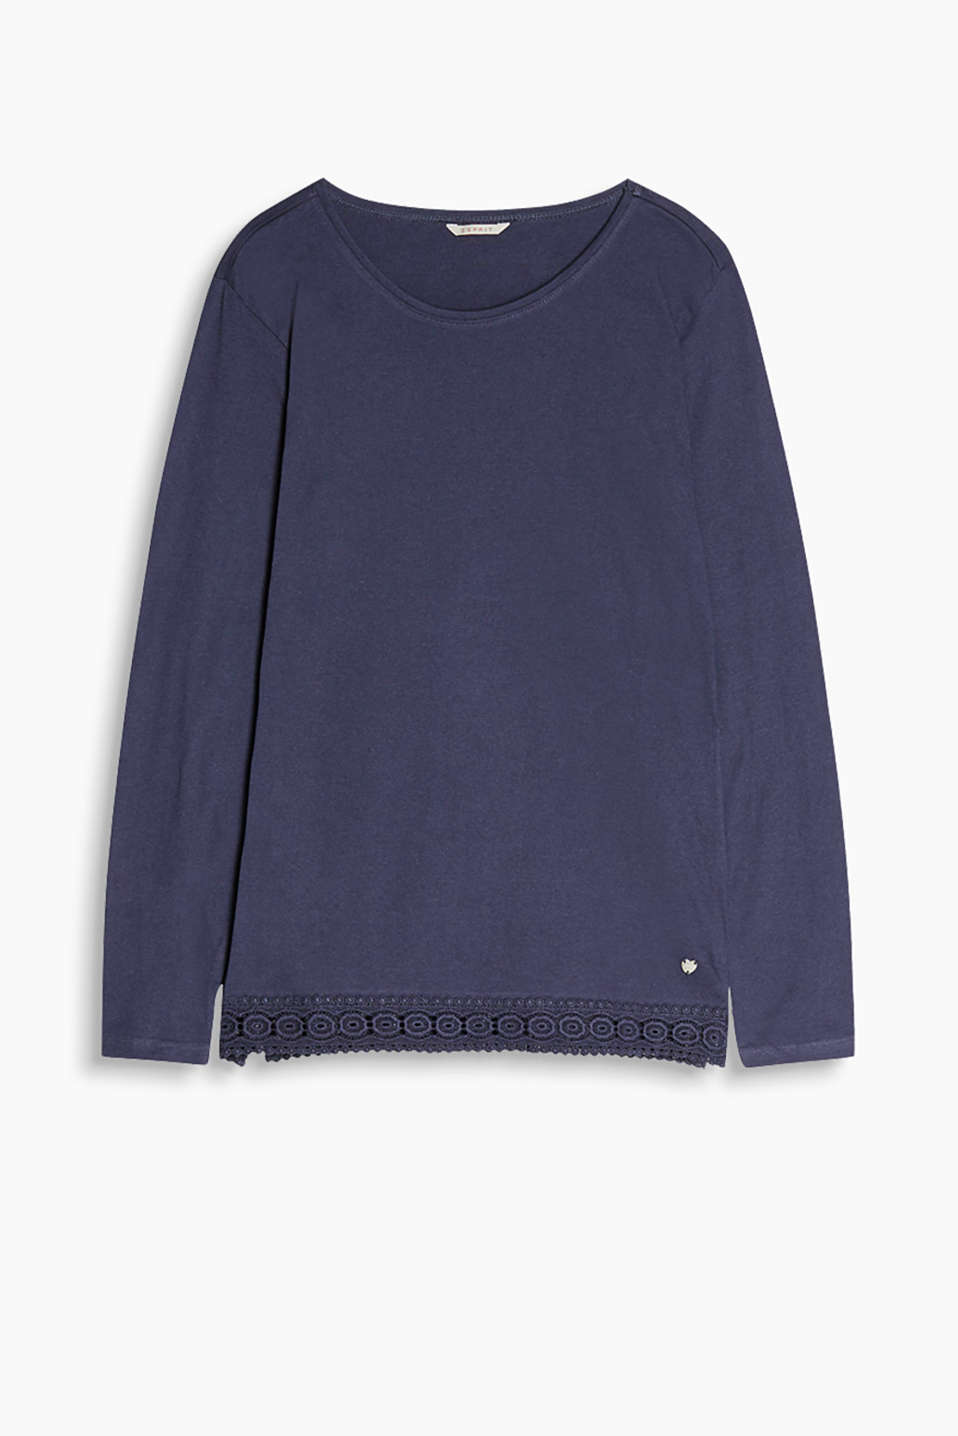 Long sleeve top with a round neckline made of soft blended cotton